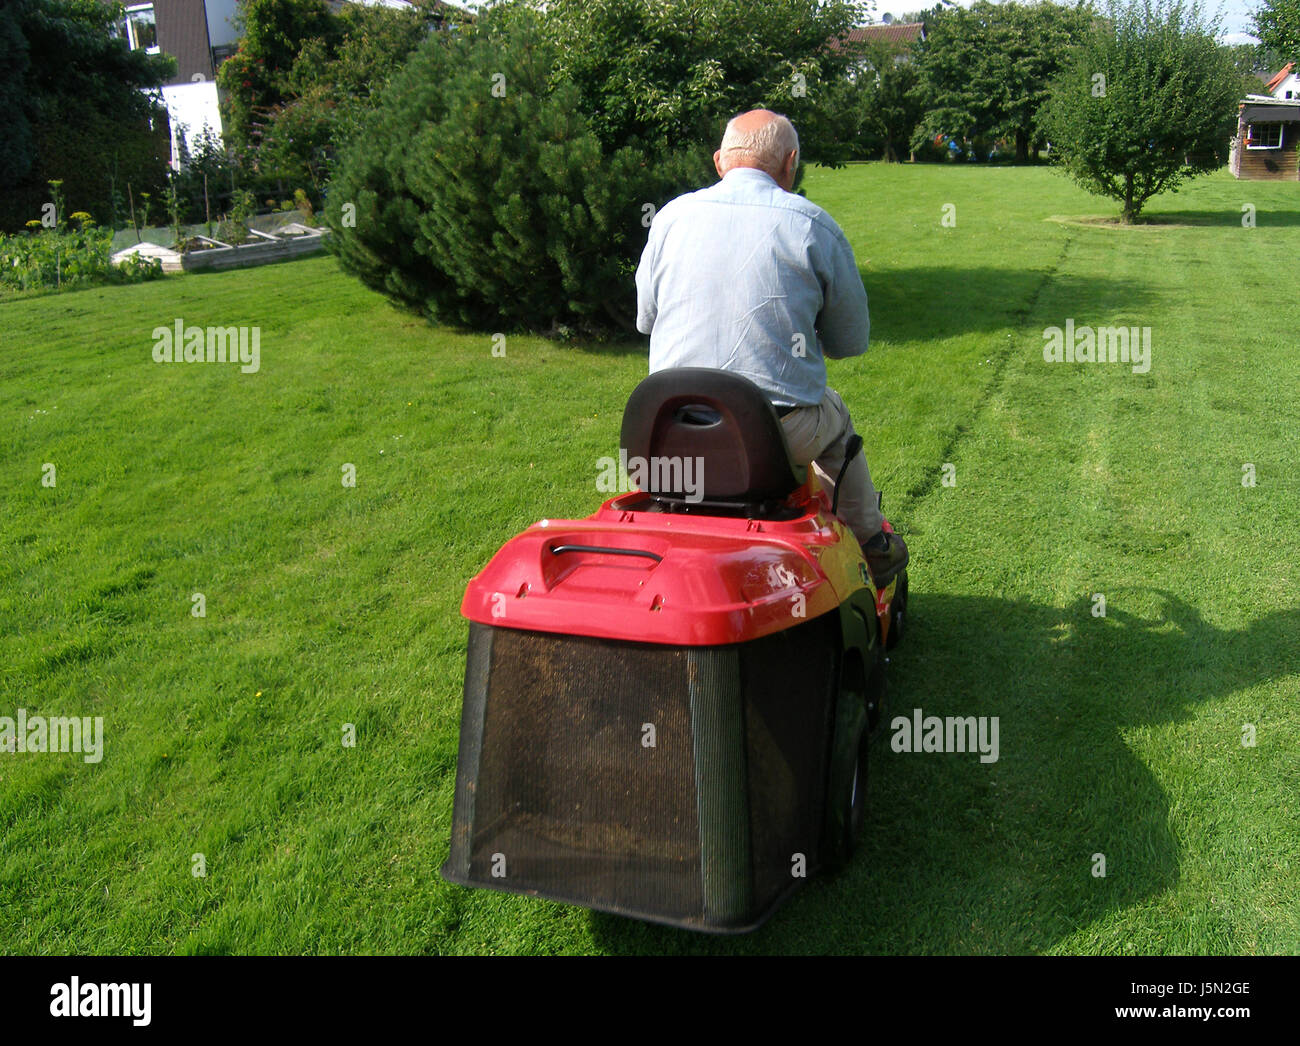 Track Laborer Stock Photos & Track Laborer Stock Images - Alamy